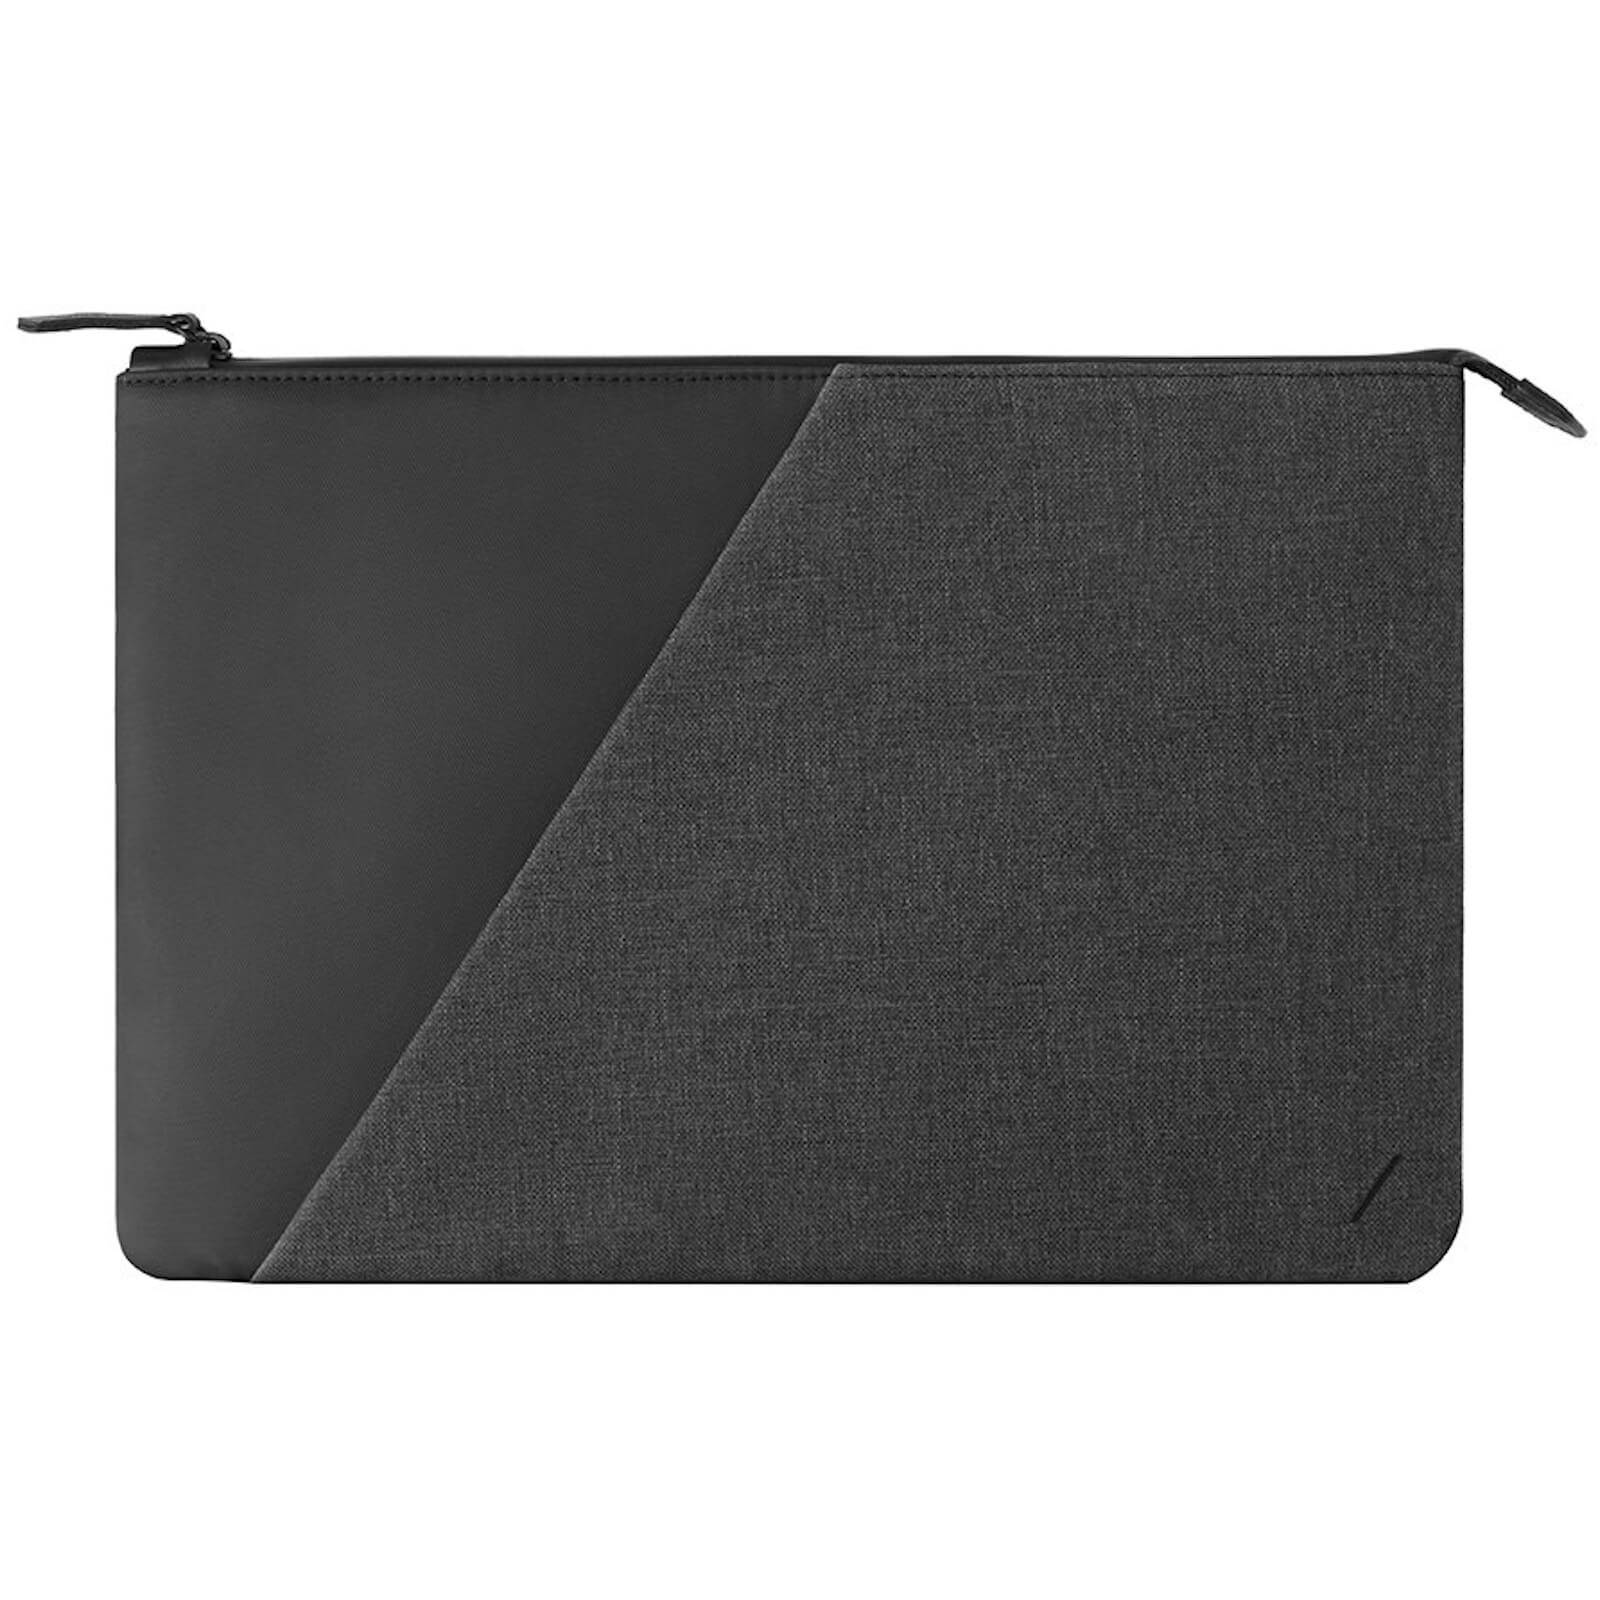 Native Union Stow Fabric Macbook Case - 13inch - Slate